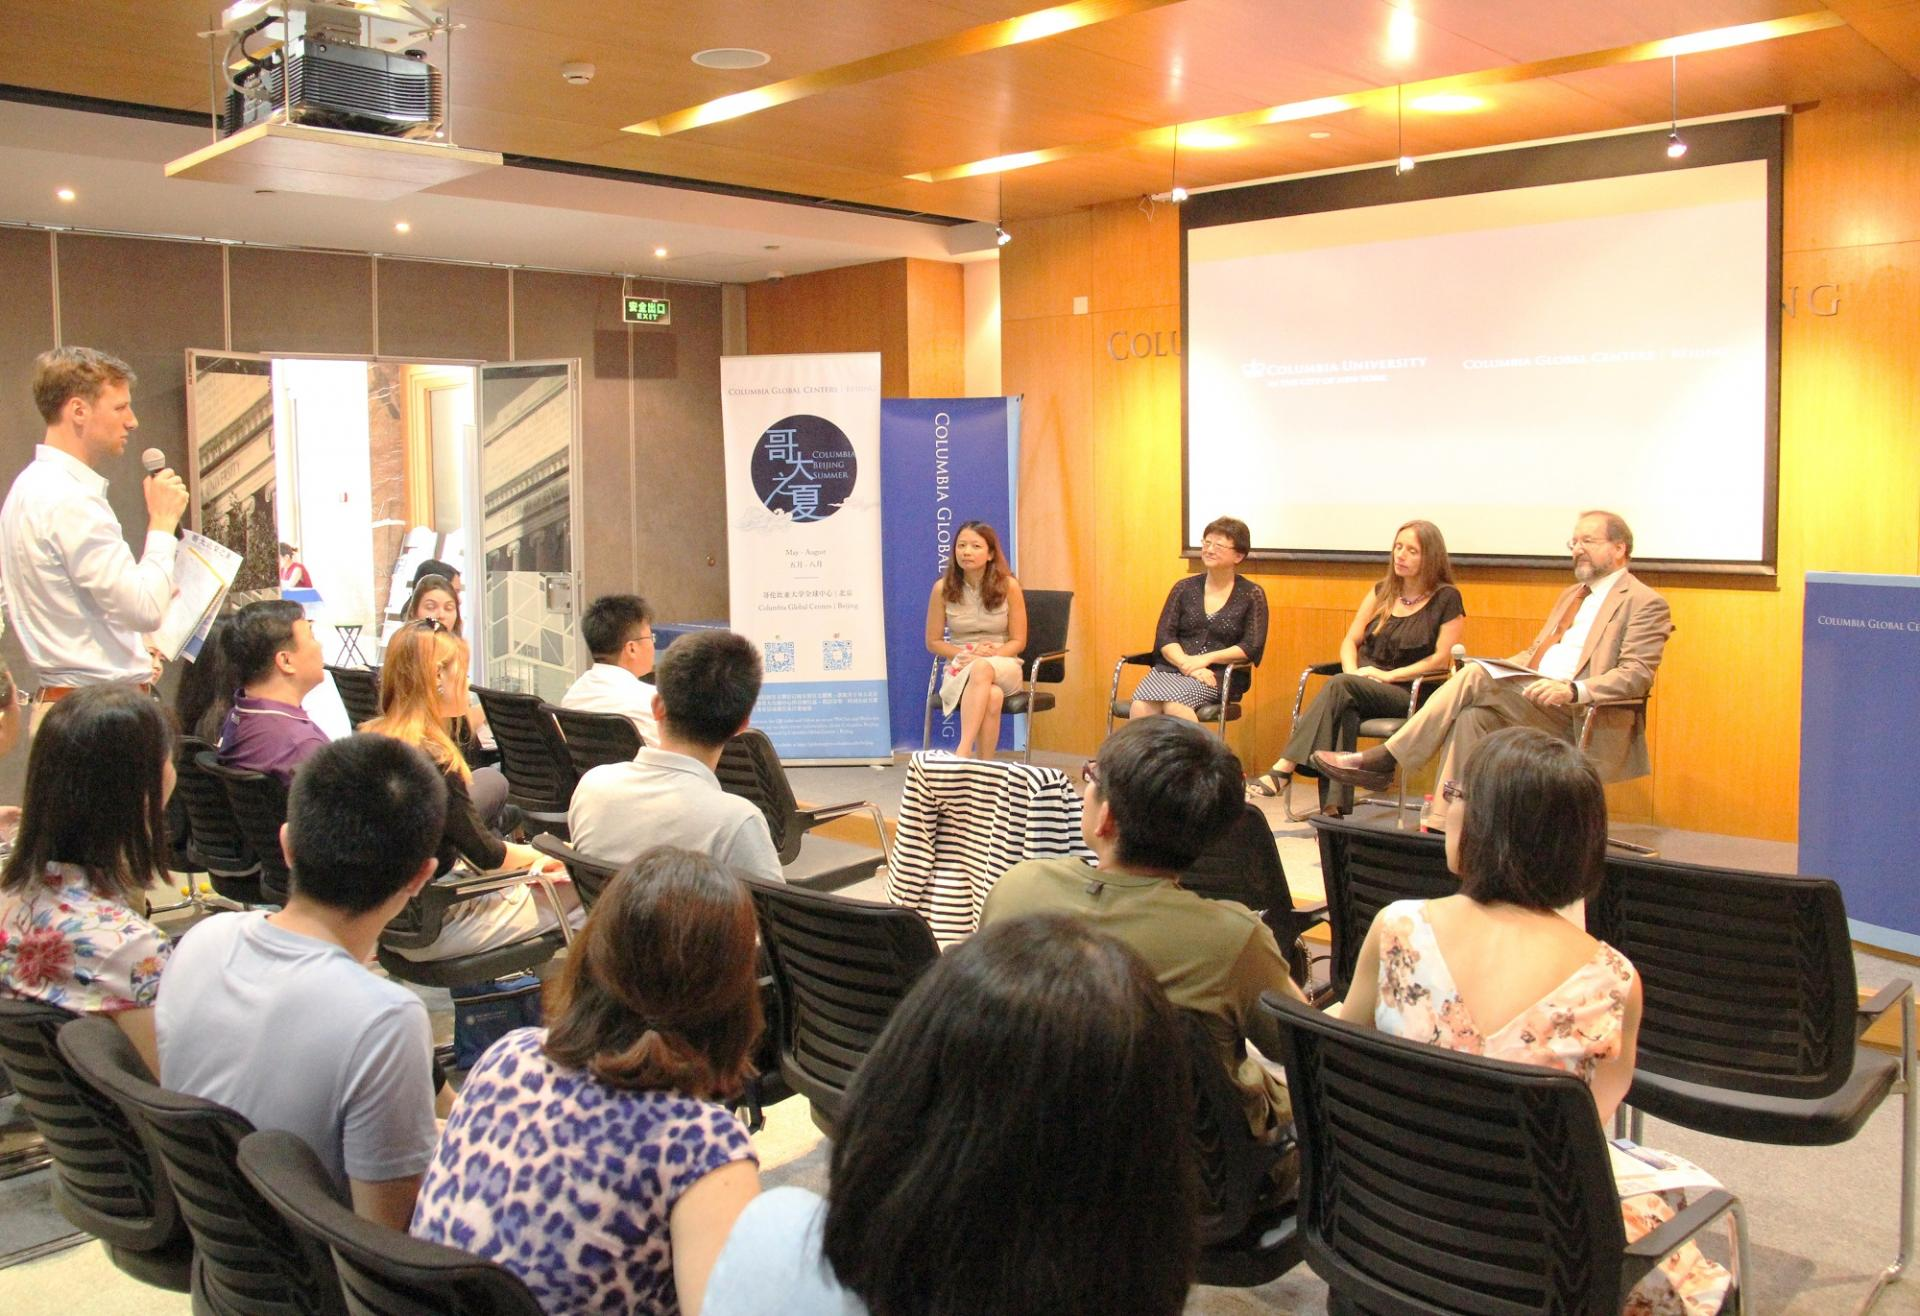 a participant standing asking a question to four panelist during an event at the Beijing Center